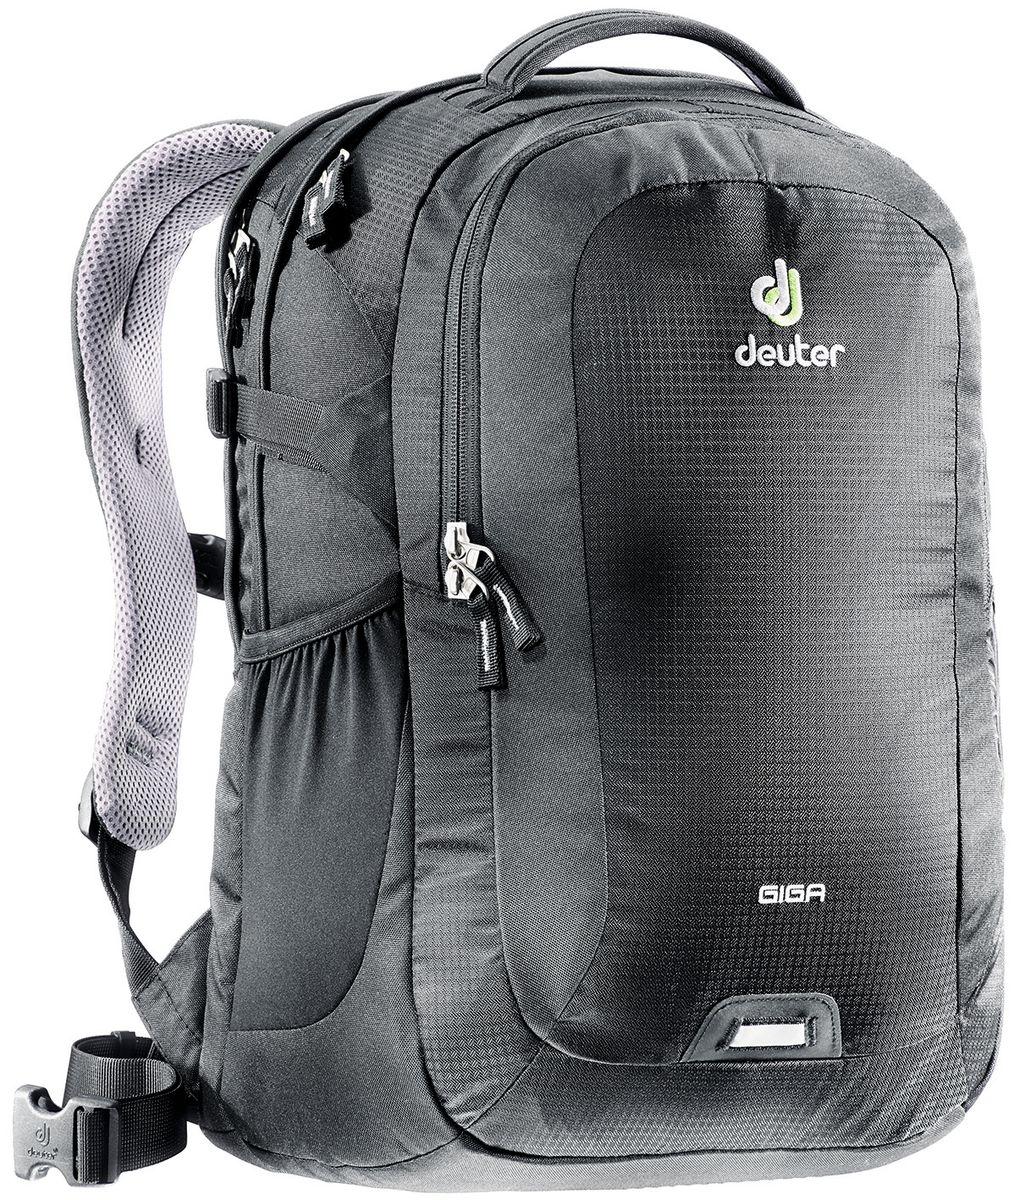 Рюкзак Deuter Daypacks Giga, цвет: черный, 28 л рюкзак deuter daypacks gigant bay dresscode б р uni